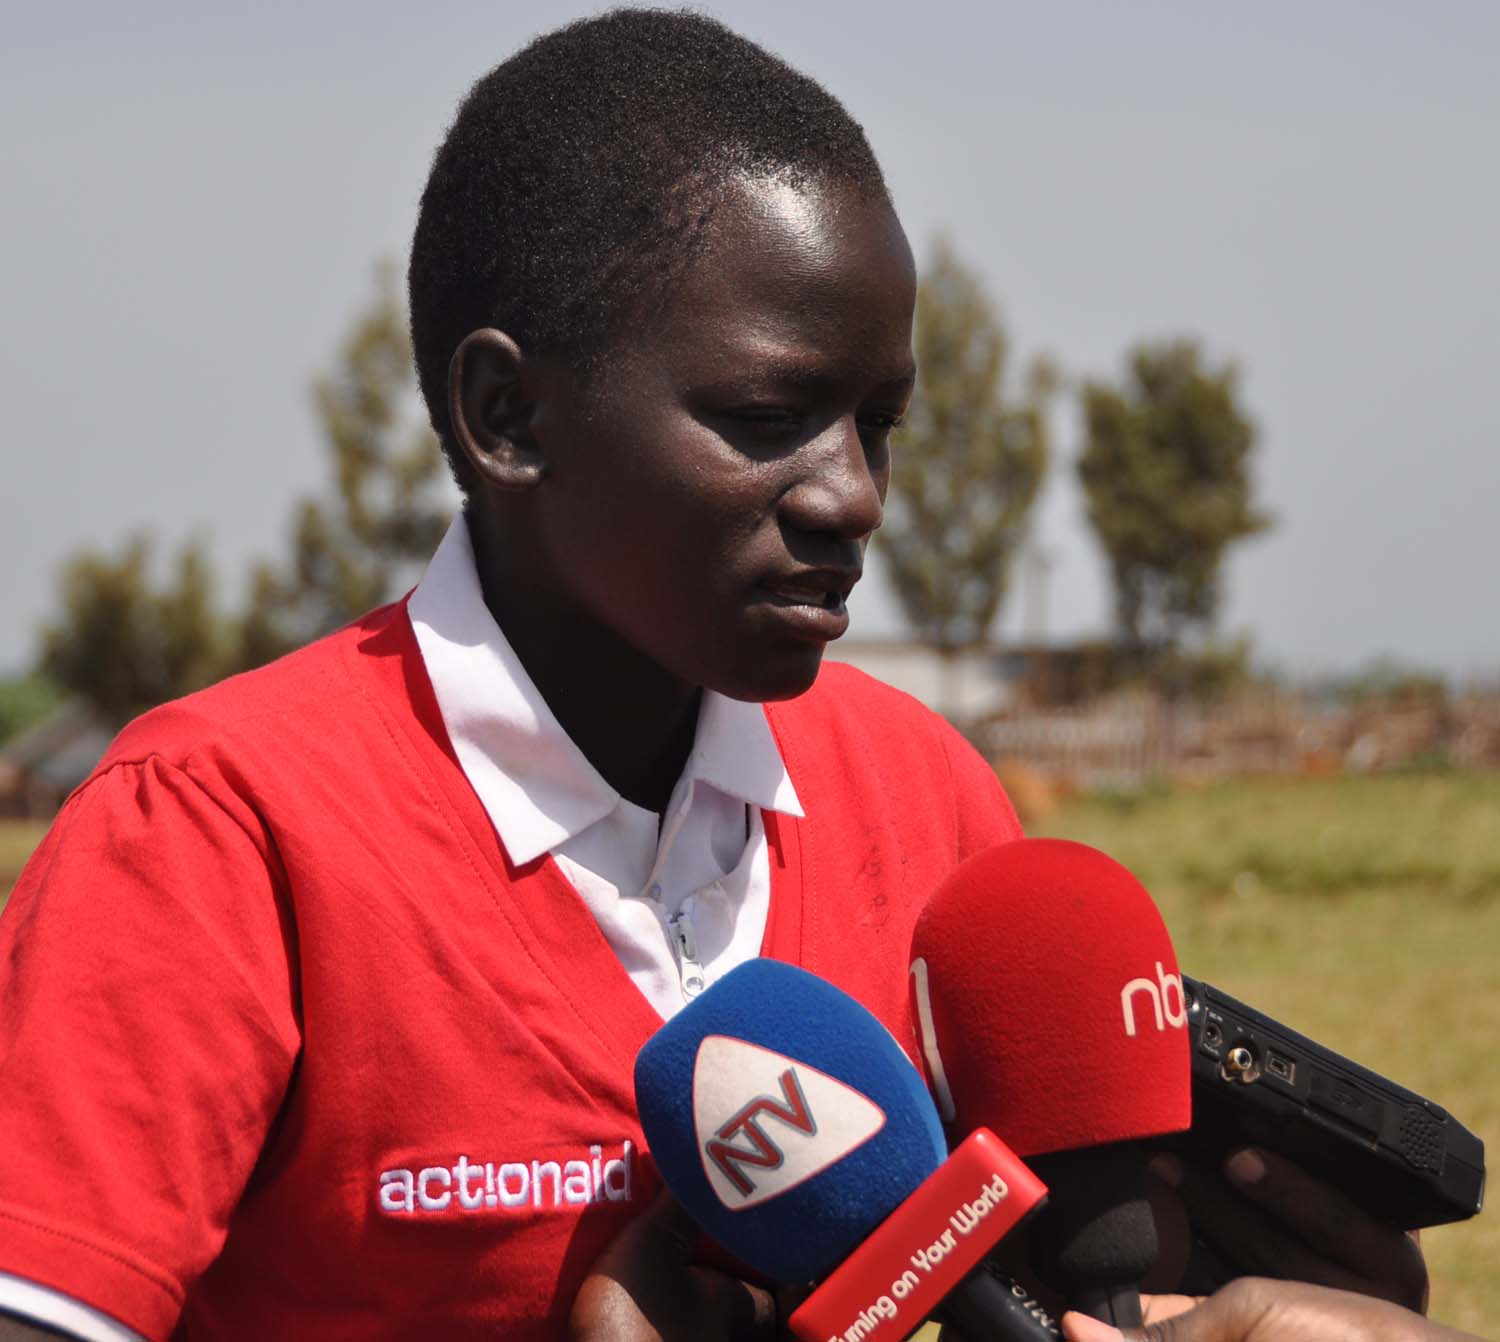 Caroline Mukit, 14 speaks at a function in Amudat district. She was married at 7 years, fled her home and is now at school in P6 and wants to be a lawyer.